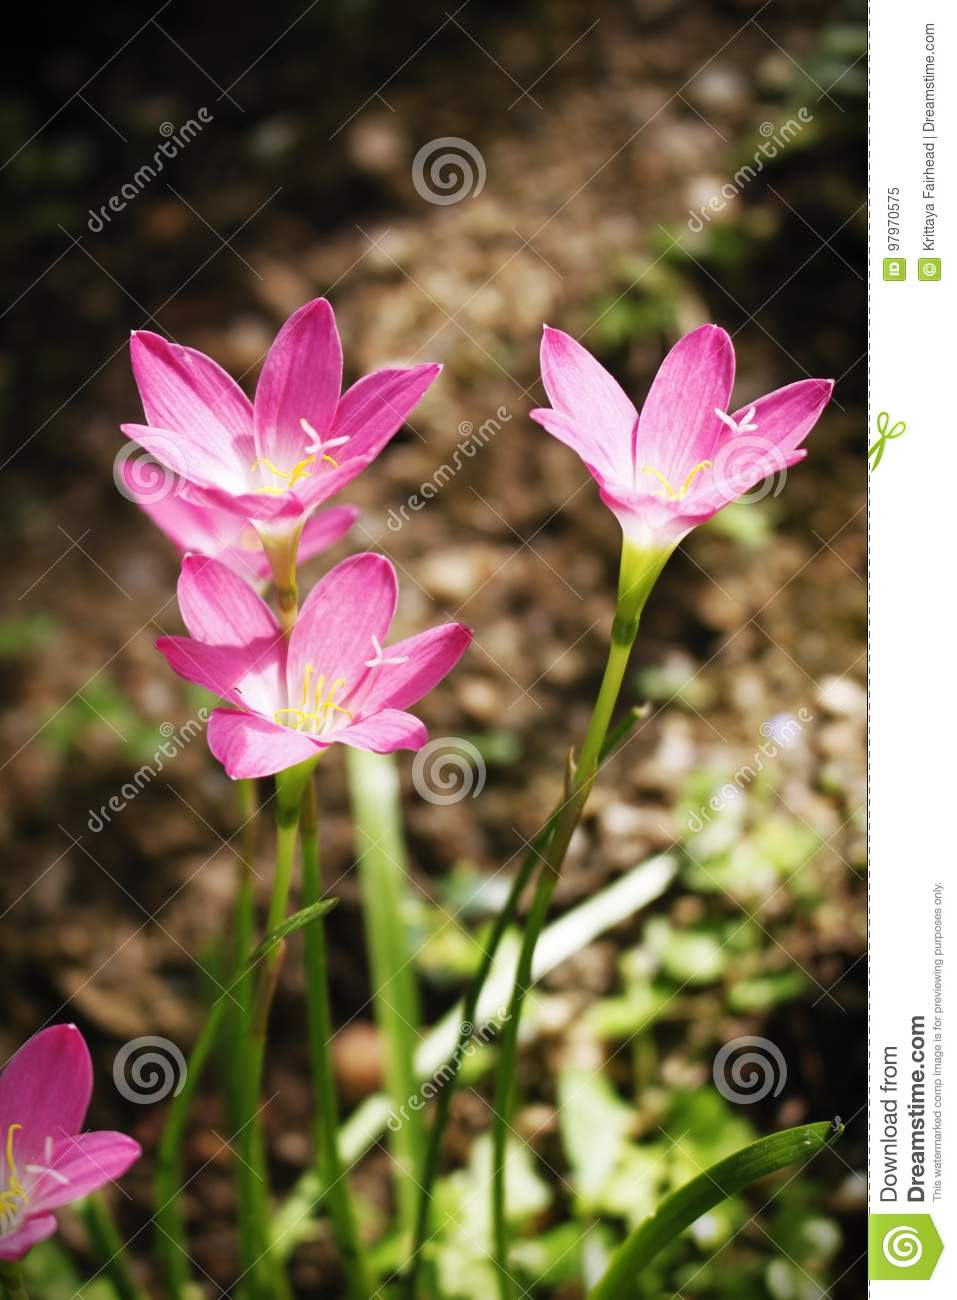 Beautiful pink flowers in the garden rain lily stock image image beautiful pink flowers in the garden rain lily flower blooming in rainy season with soft light of sunset izmirmasajfo